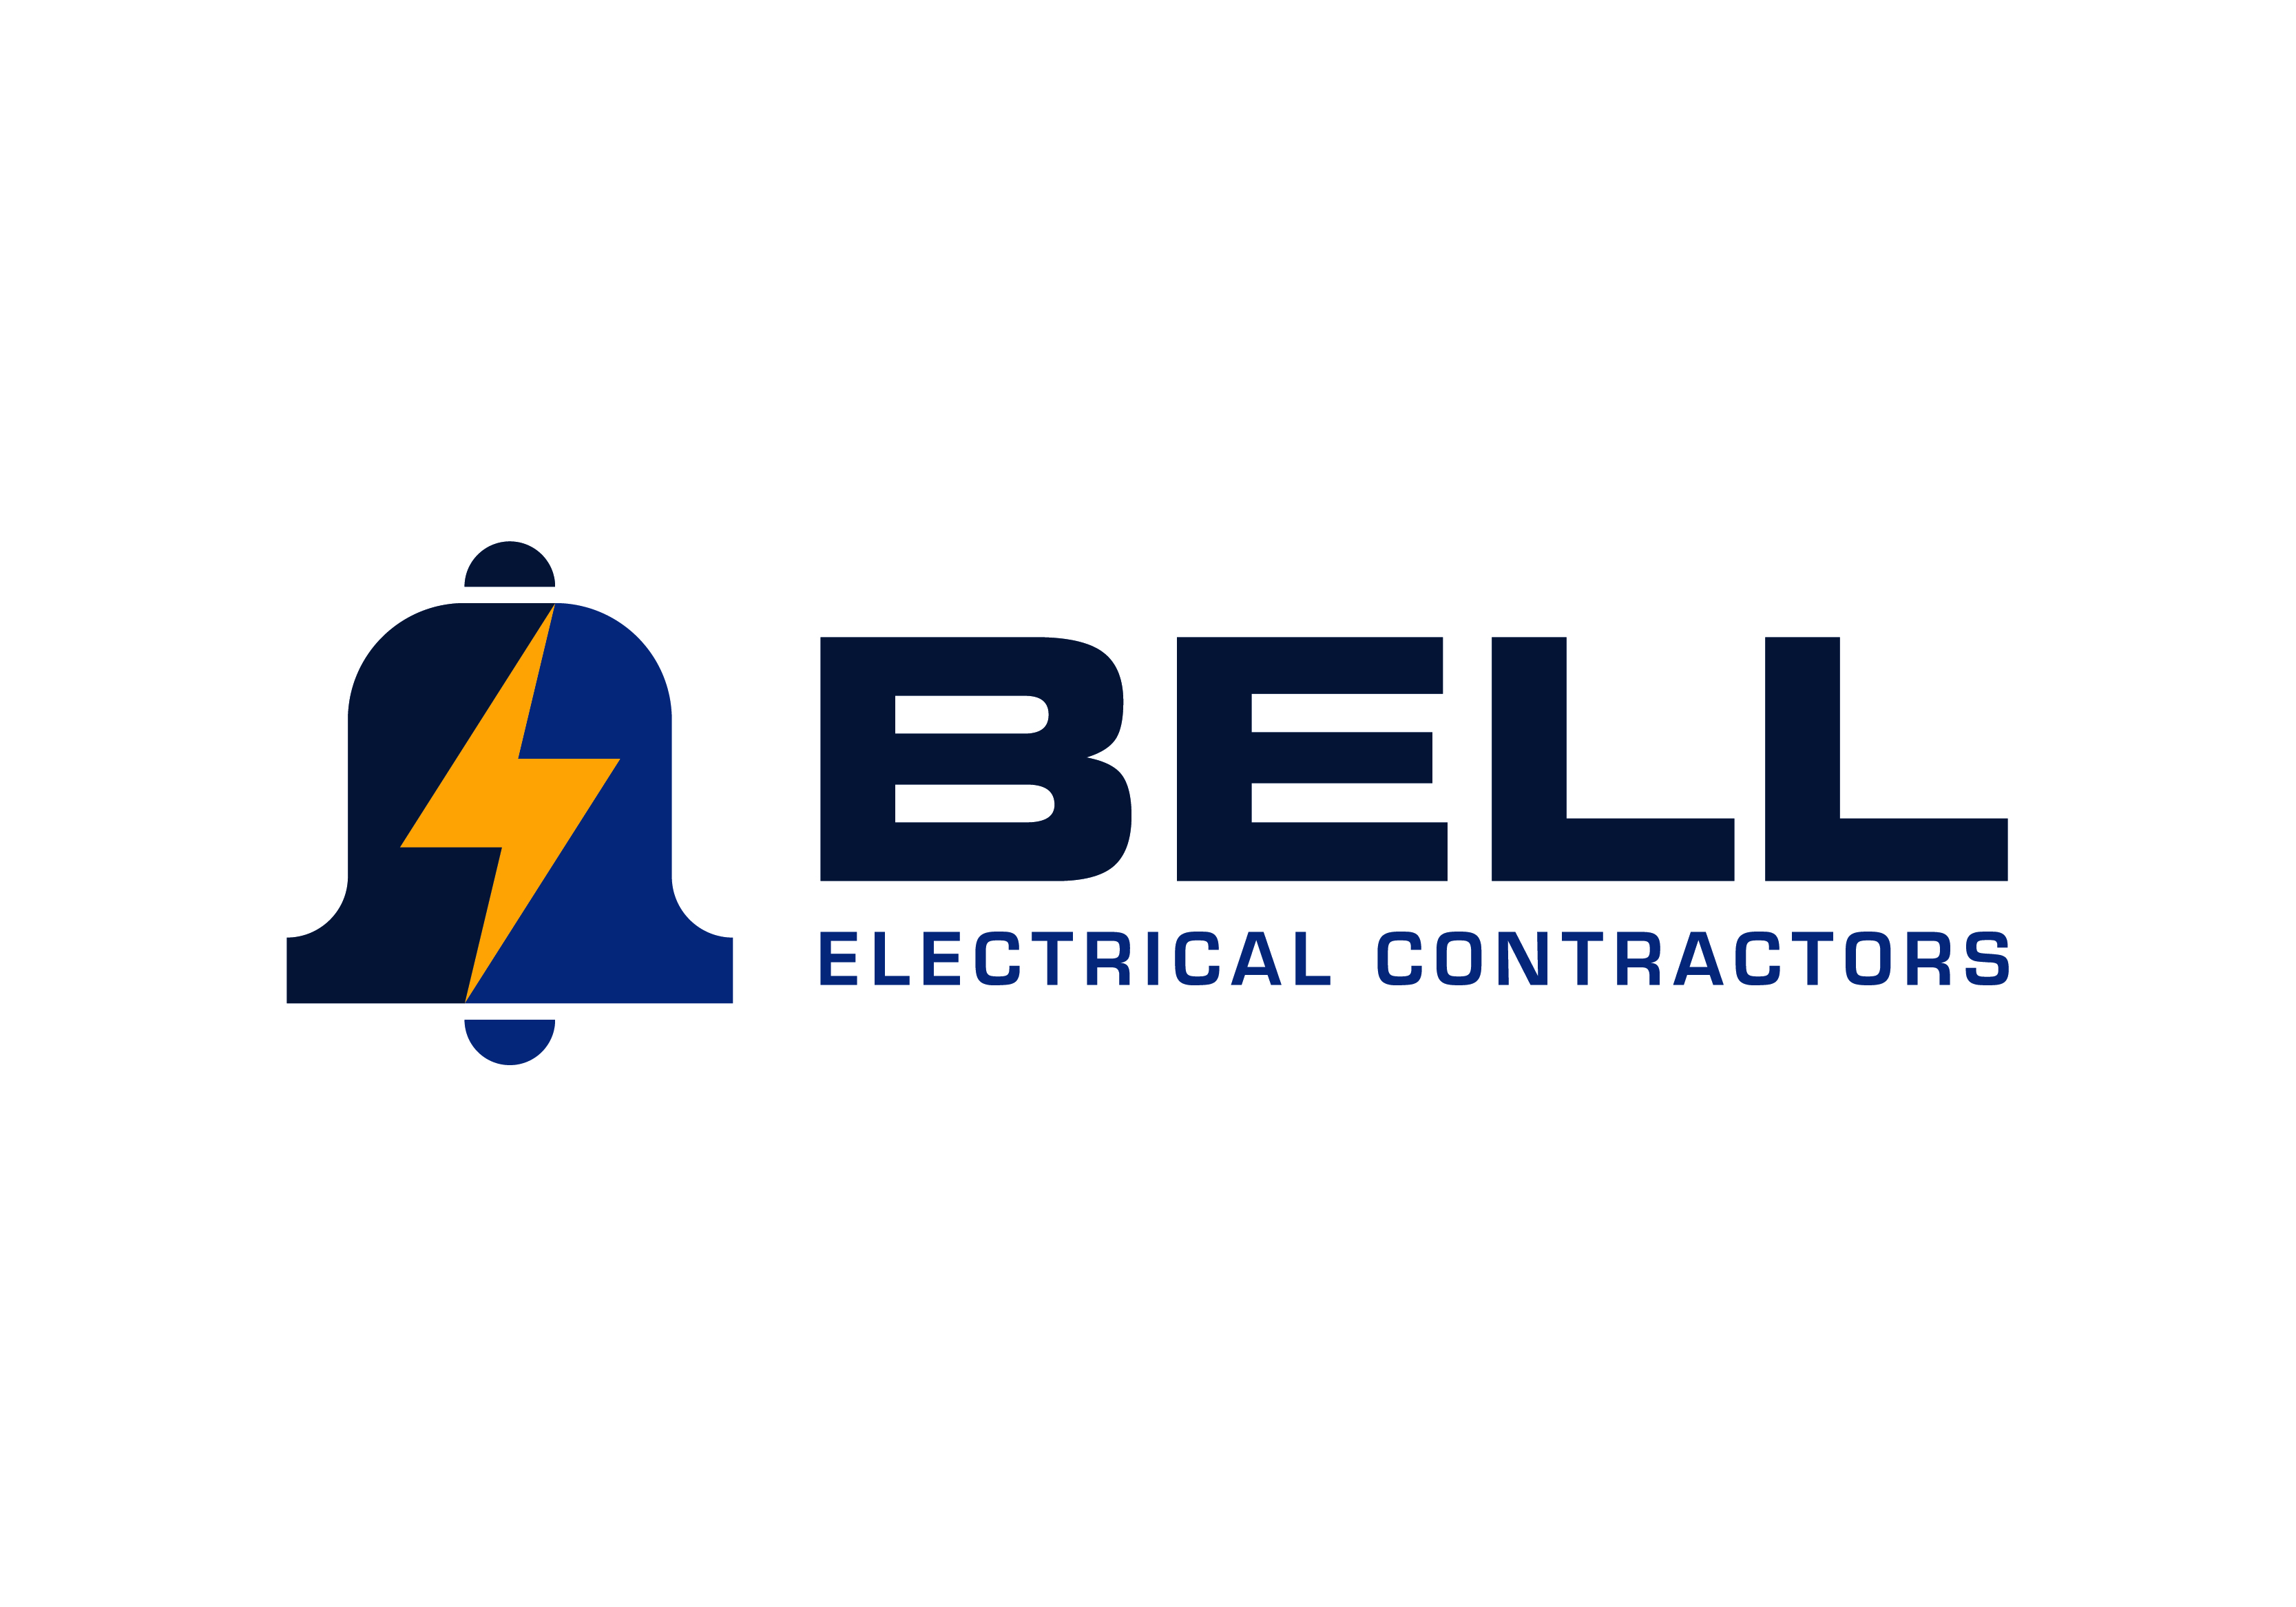 Bell Electrical Contractors